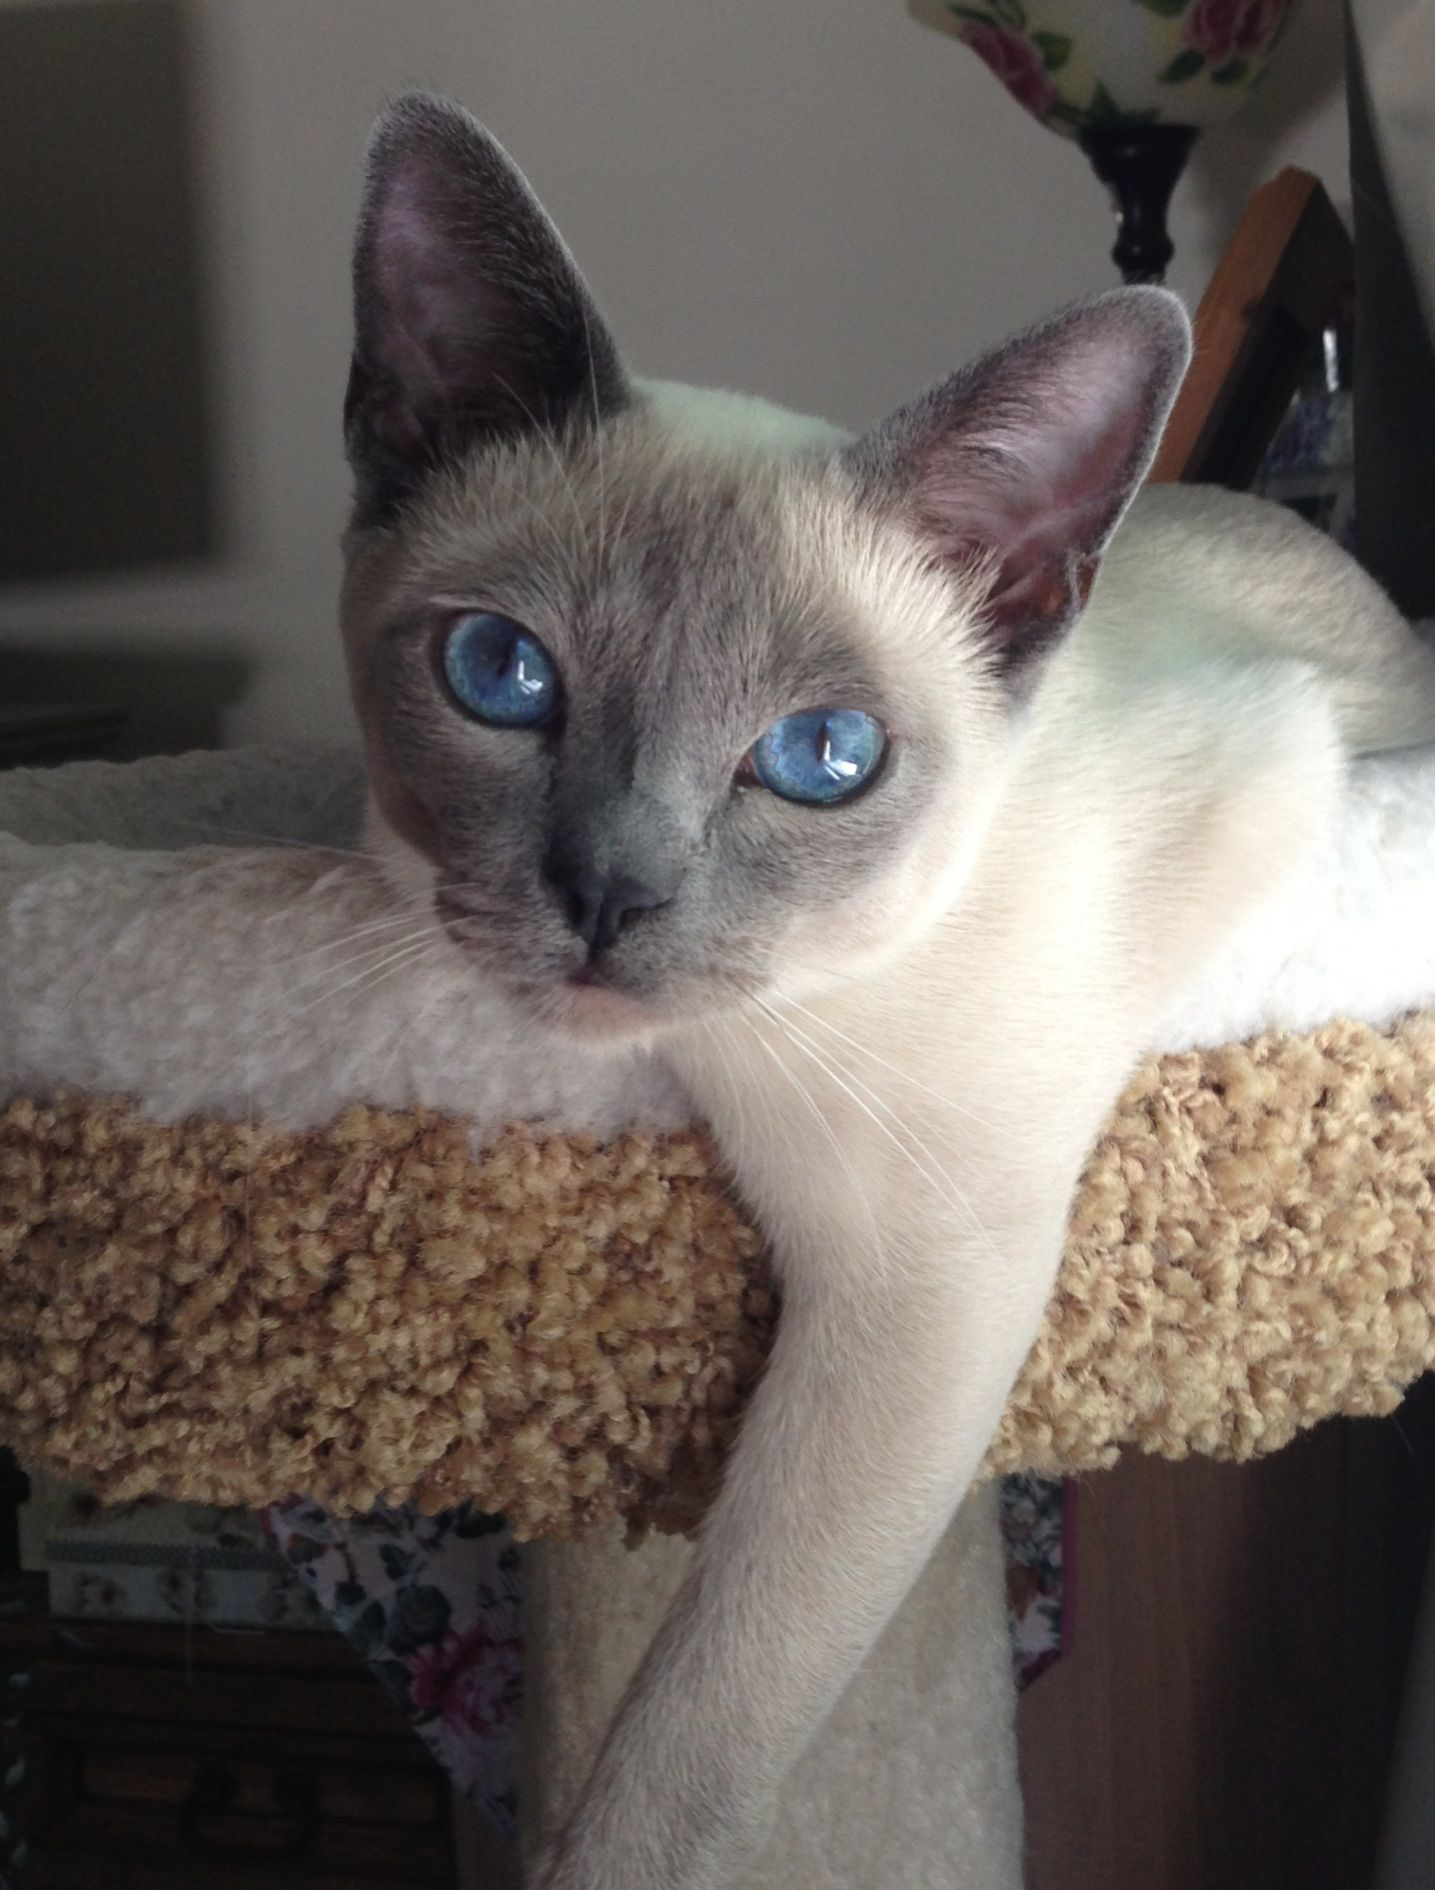 Blue point tonkinese kitten | Cute Cats and Kittens | Pinterest ...